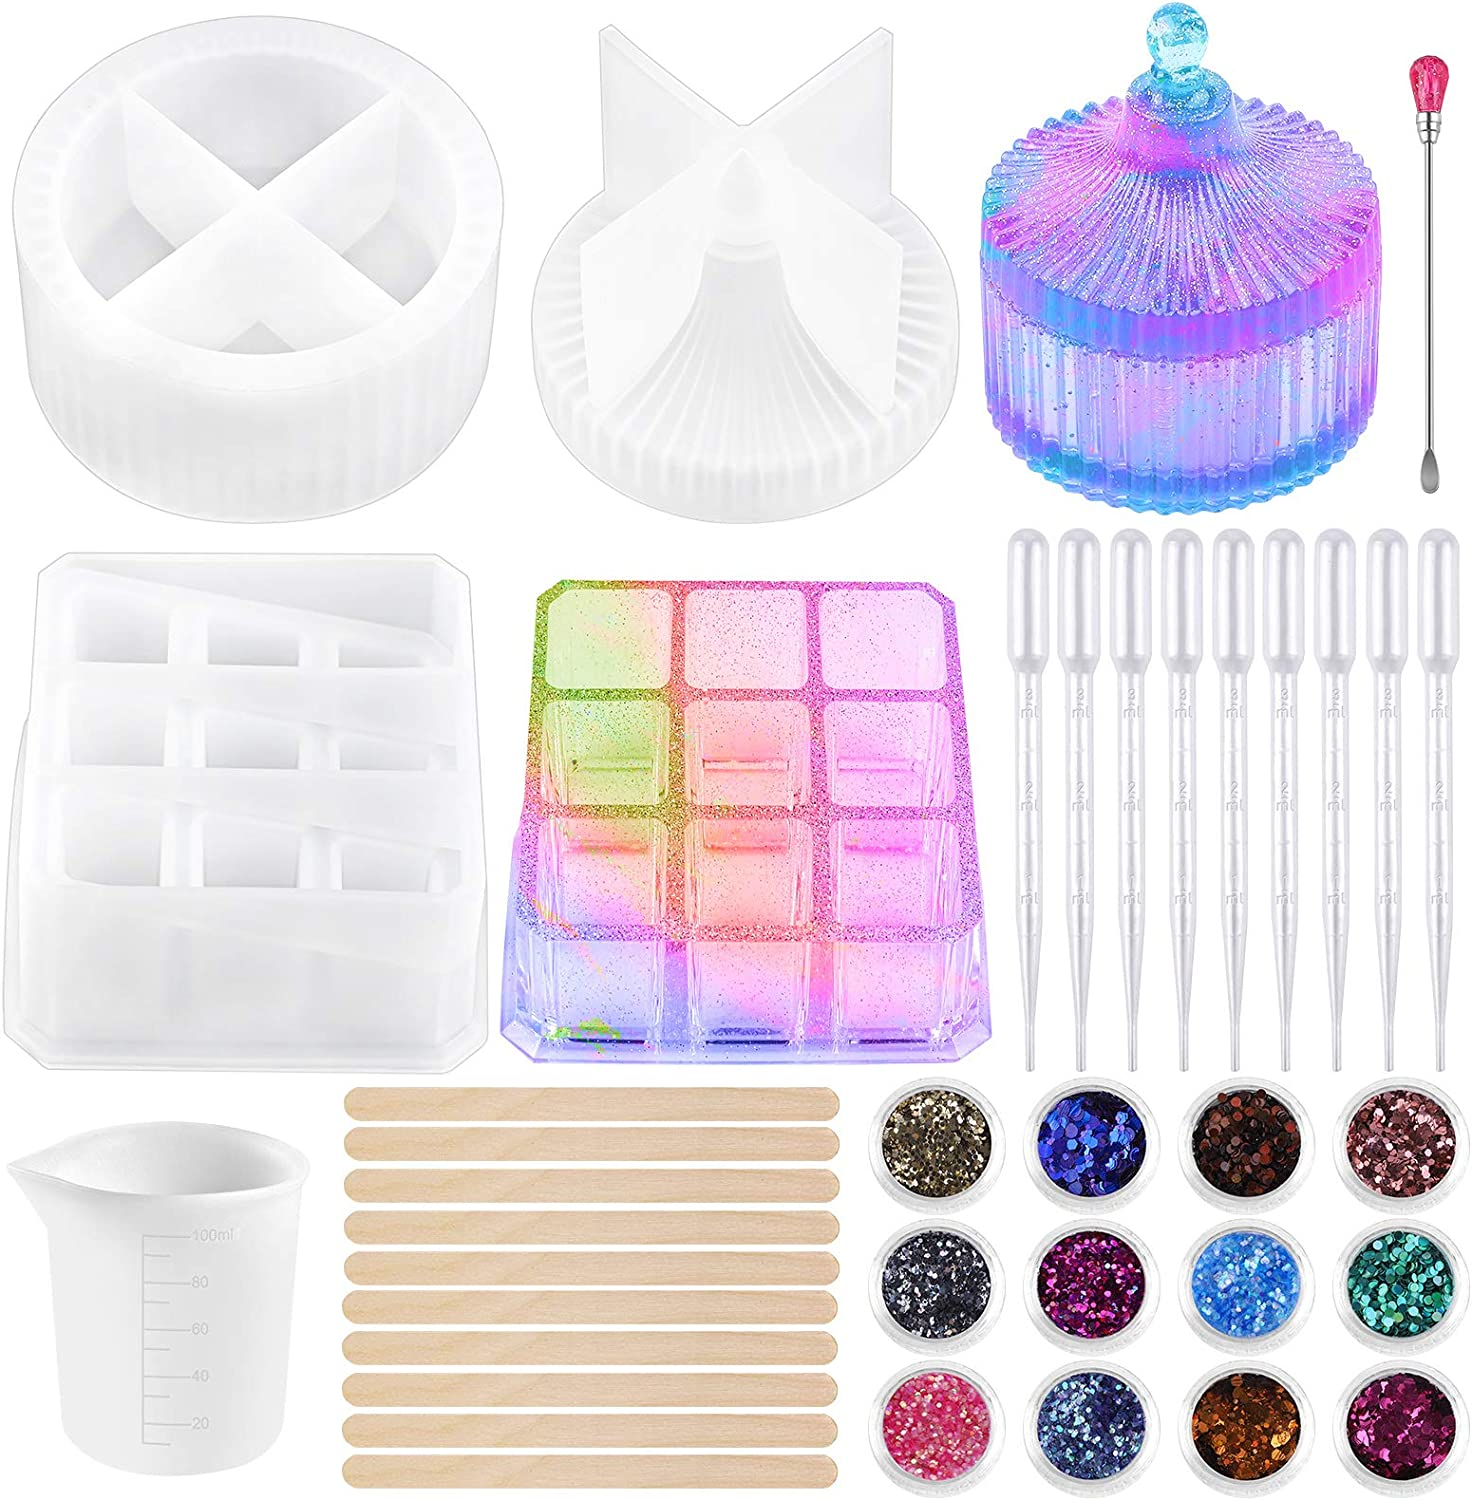 URATOT 2 Pack Silicone Jewelry Finally popular brand 2021new shipping free Molds Round Box Trinket